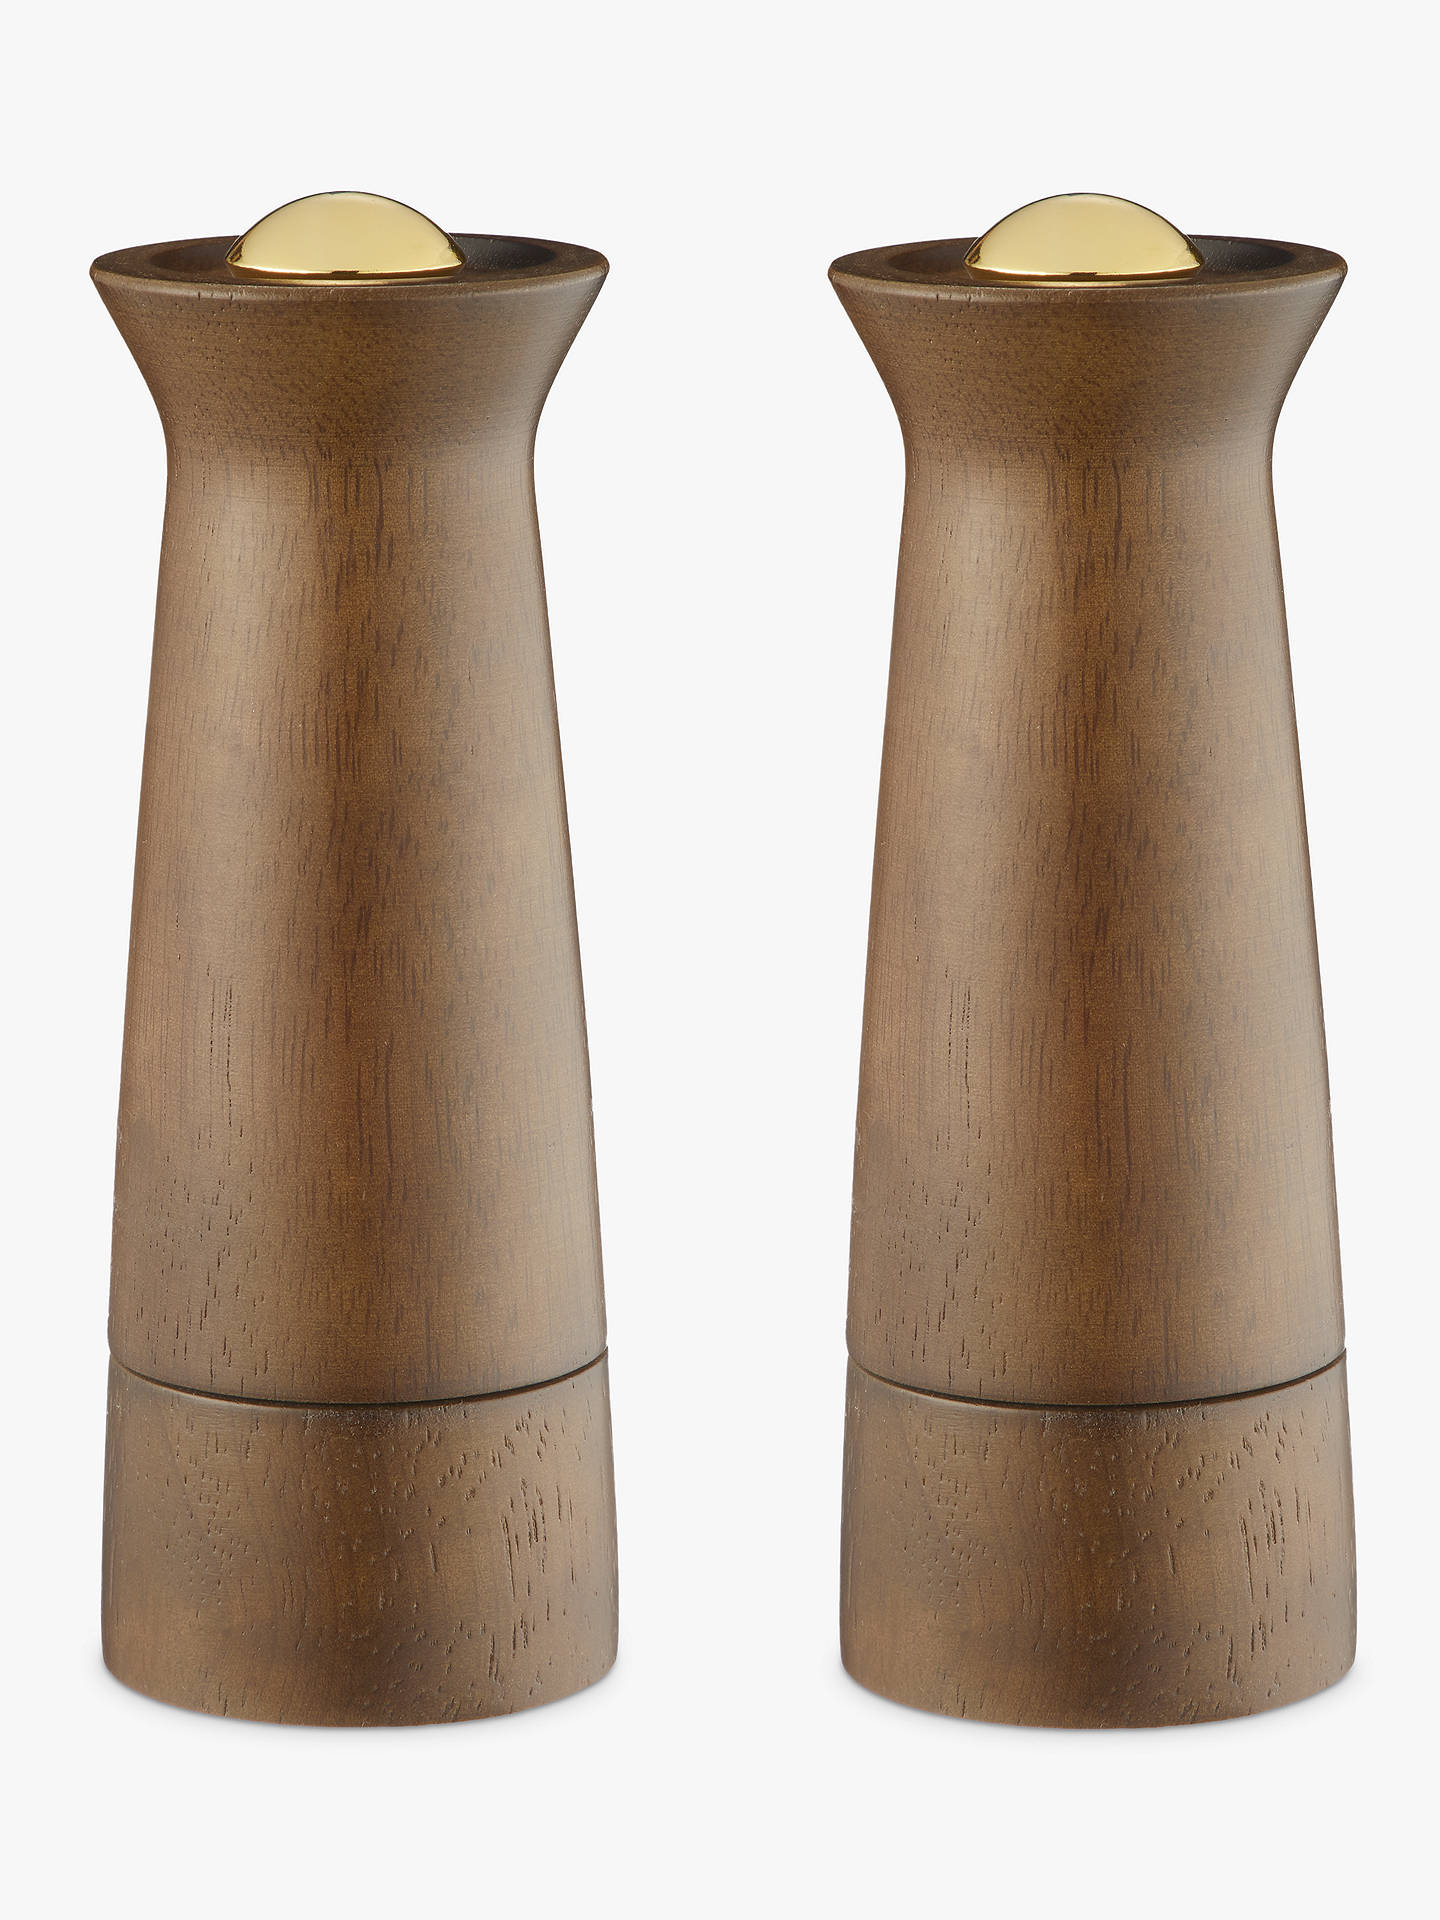 Buy John Lewis & Partners Forest Wood Salt and Pepper Mills, Natural/Brass, Set of 2 Online at johnlewis.com